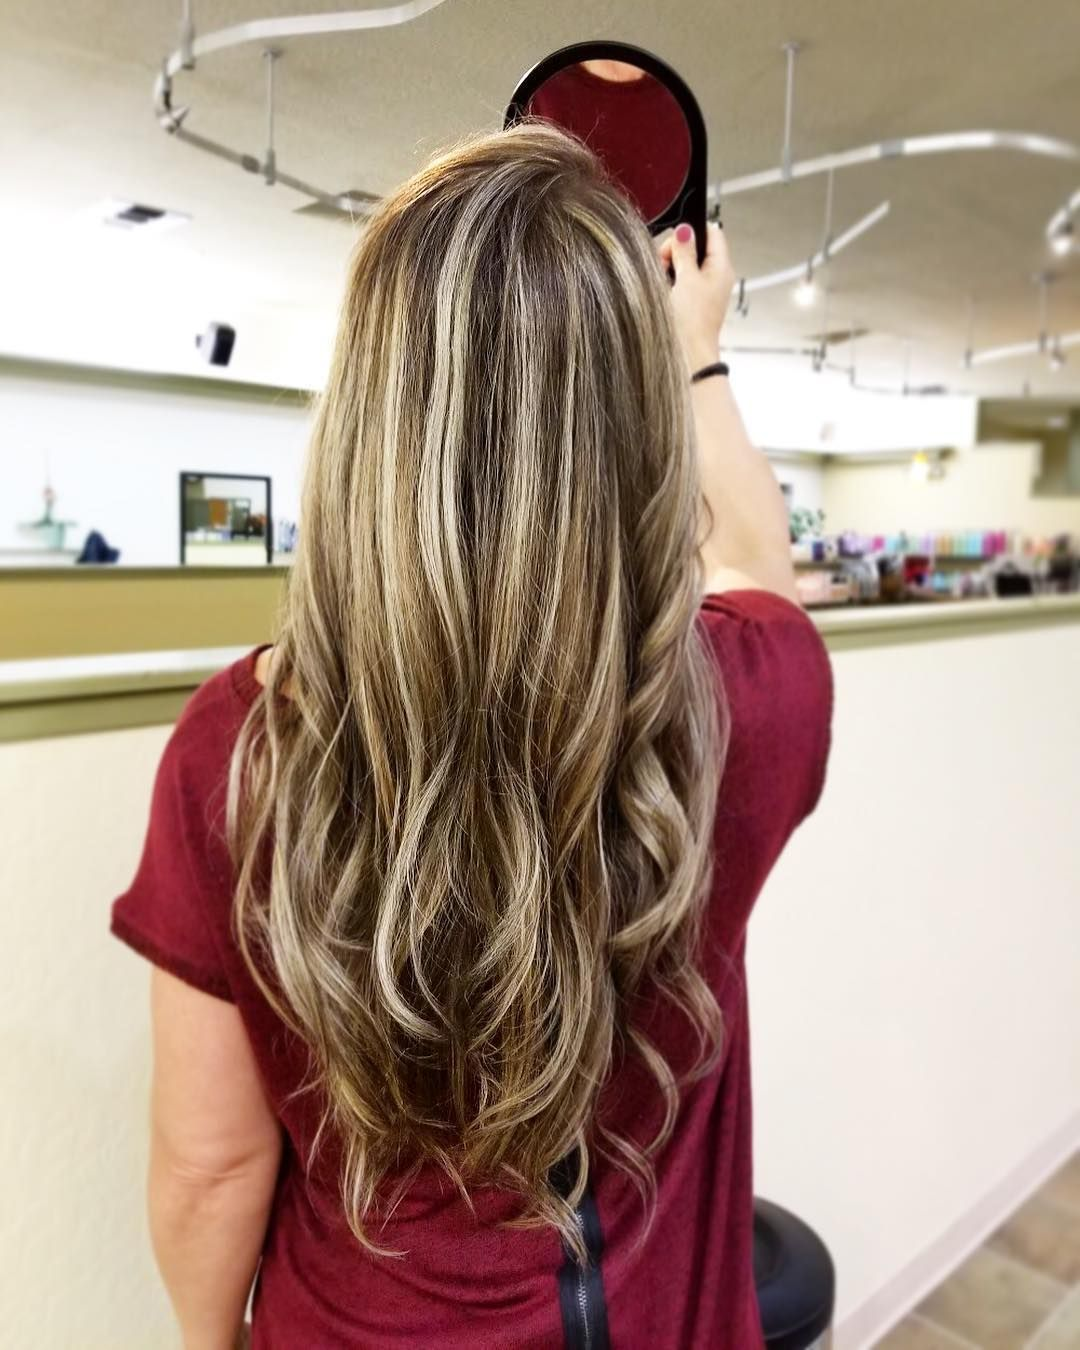 Serving Some Looks Hairgoals Hairextensions Hairsalon